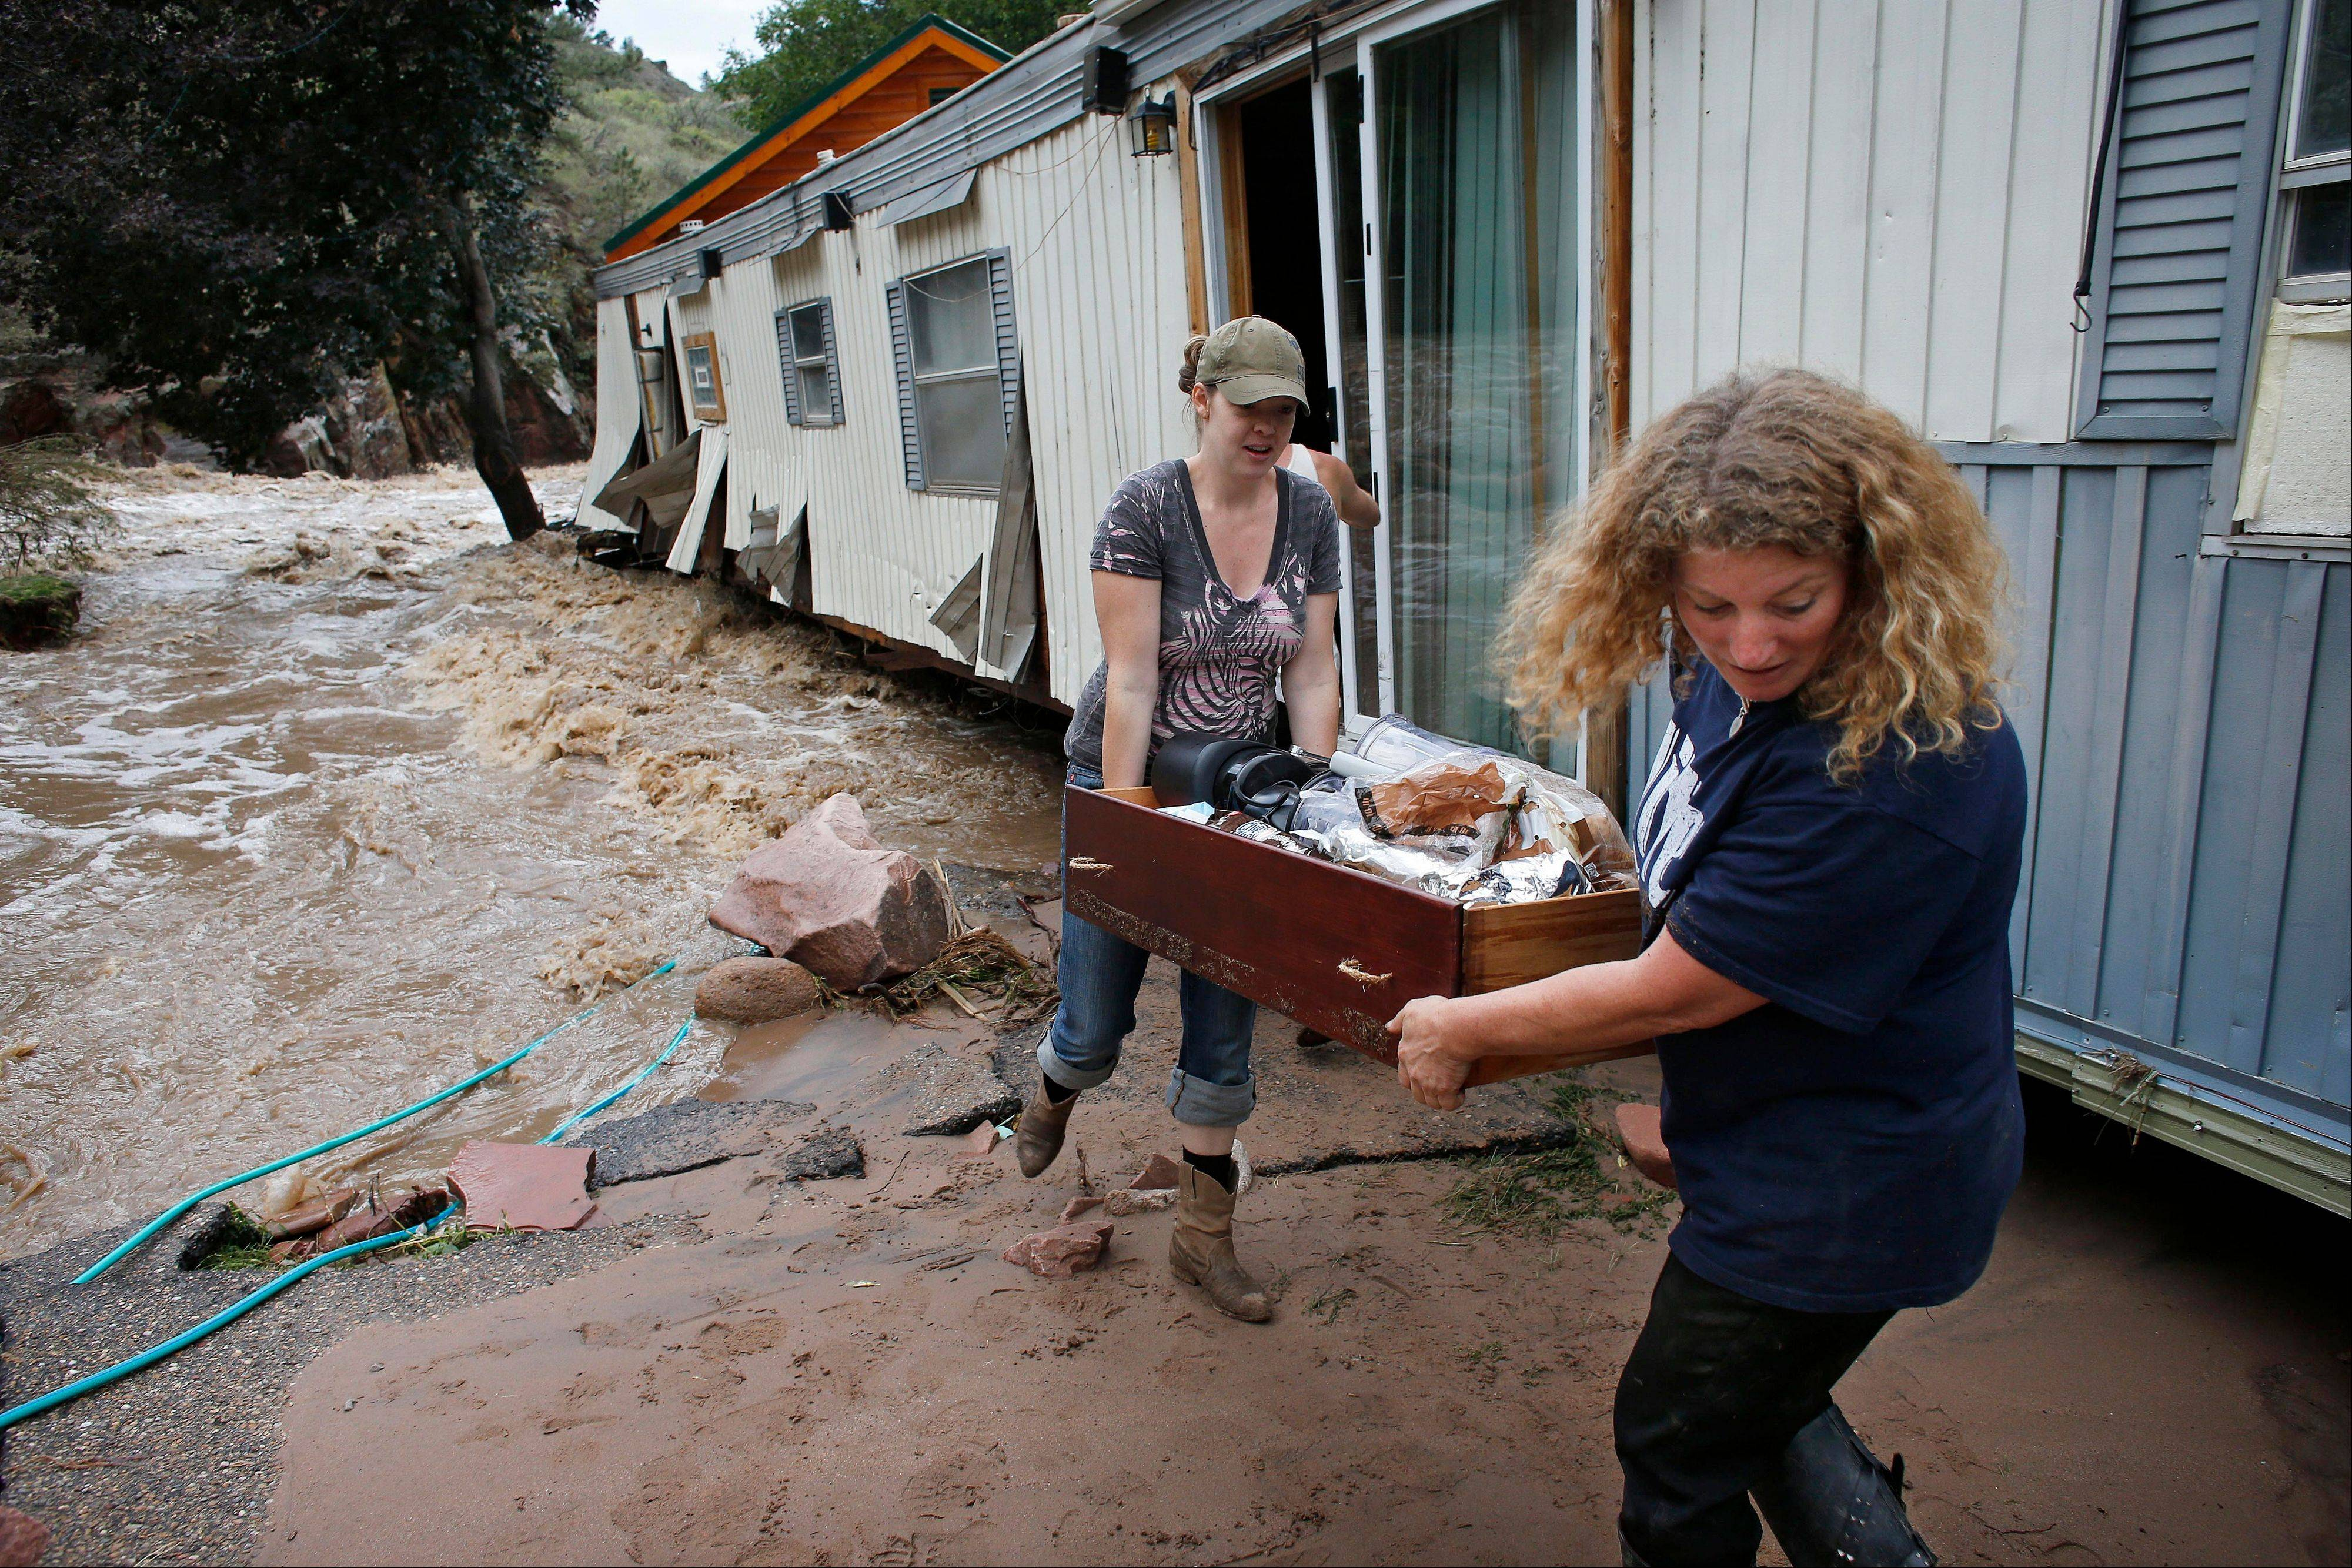 Holly Robb, left, and her neighbor Pam Bowers salvage belongings after storms that raged through the Rocky Mountain foothills in Lyons, Colo. Two low-lying trailer parks in the small town, 20 minutes to the north of Boulder, bore the brunt of the recent flooding. �I don�t think we�ll ever be able to go back,� said Robb.